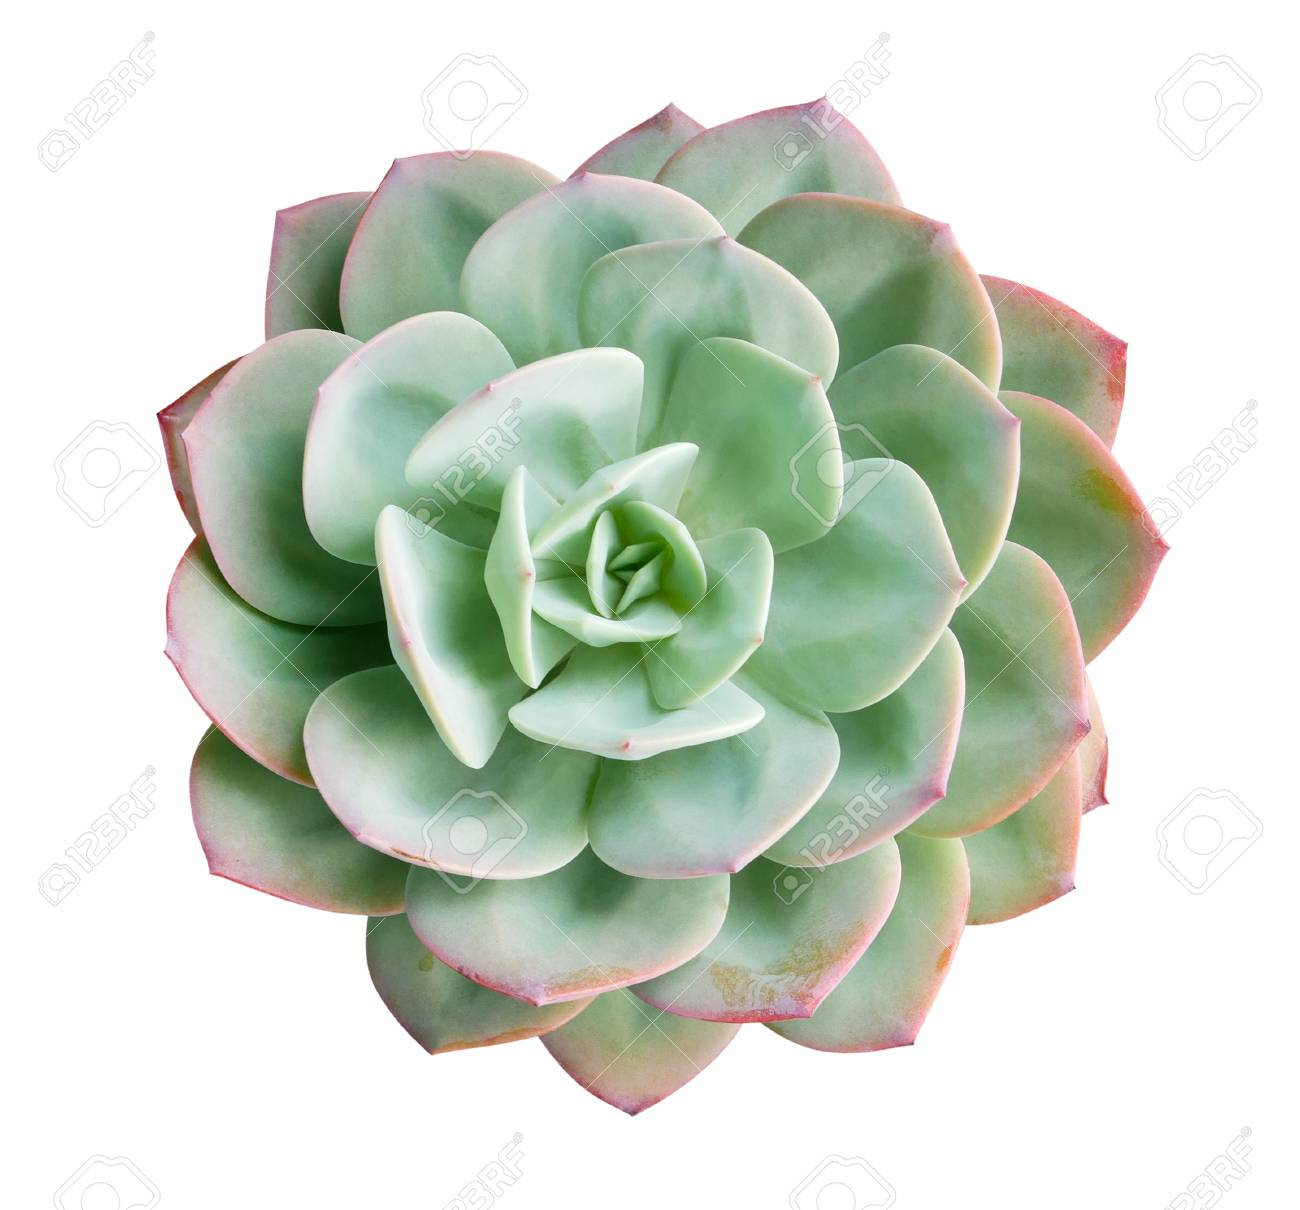 119253323-green-succulent-cactus-flower-plant-top-view-isolated-on-white-background.jpg